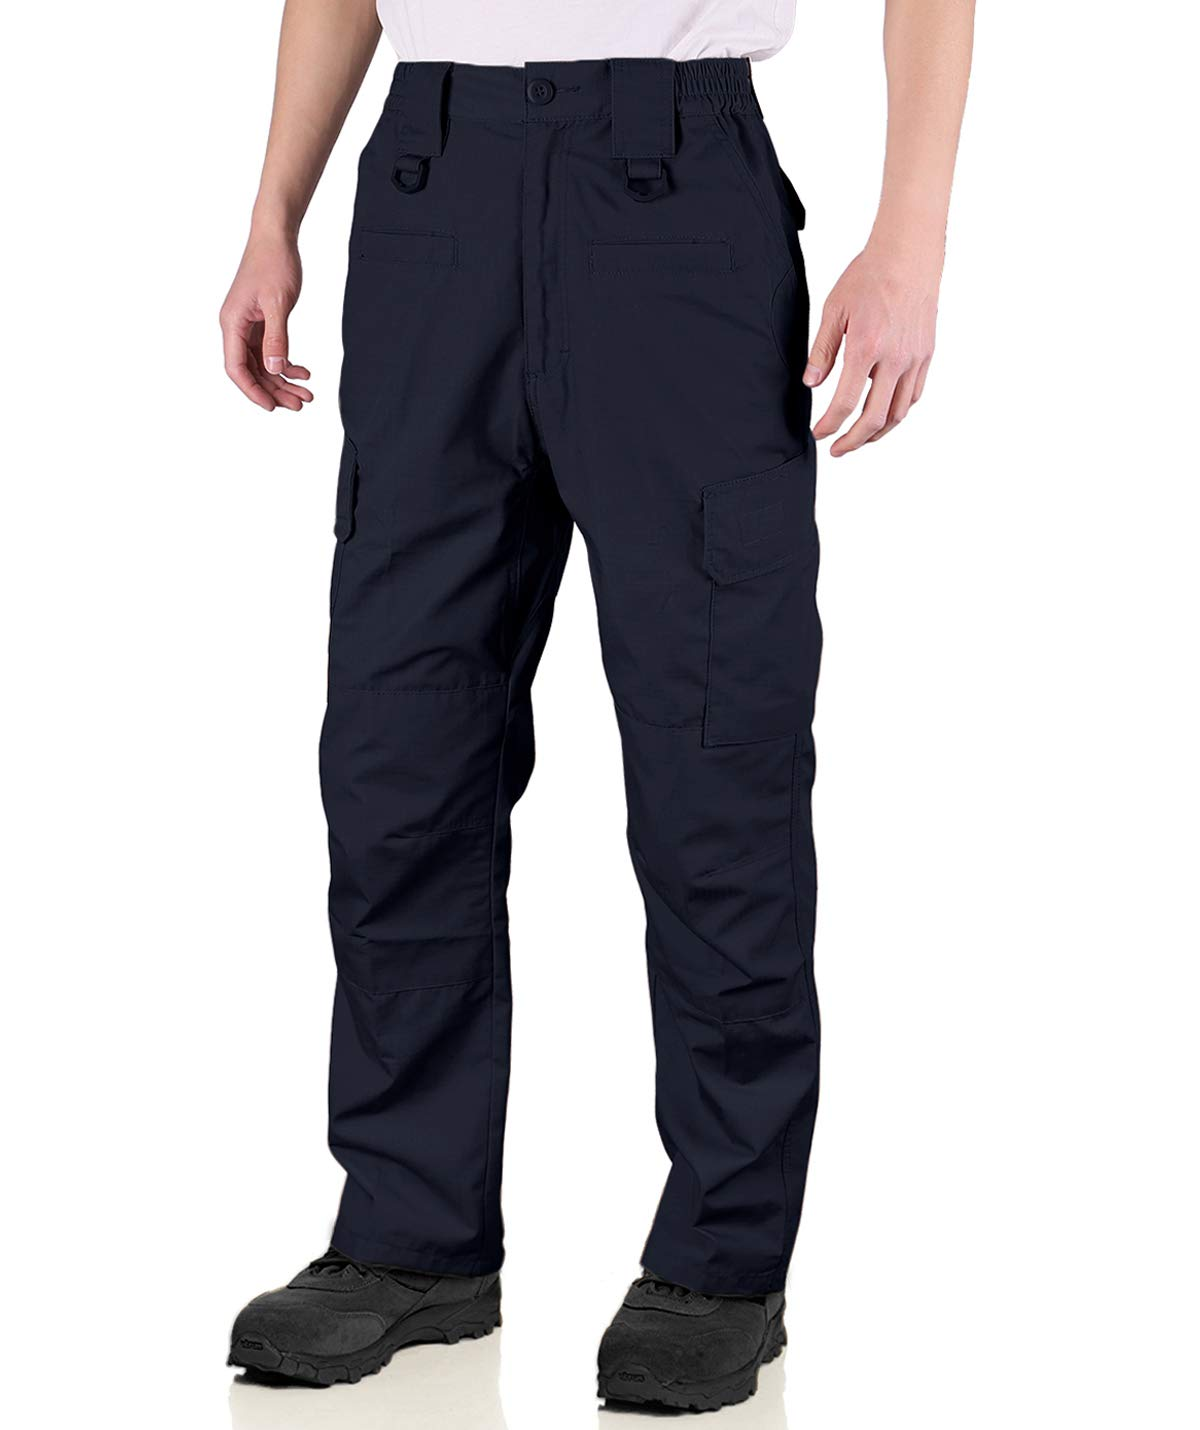 HARD LAND Men's Waterproof Tactical Pants Ripstop Cargo Work Pants with Elastic Waist for Hunting Fishing Hiking Size 36×32 Navy Blue